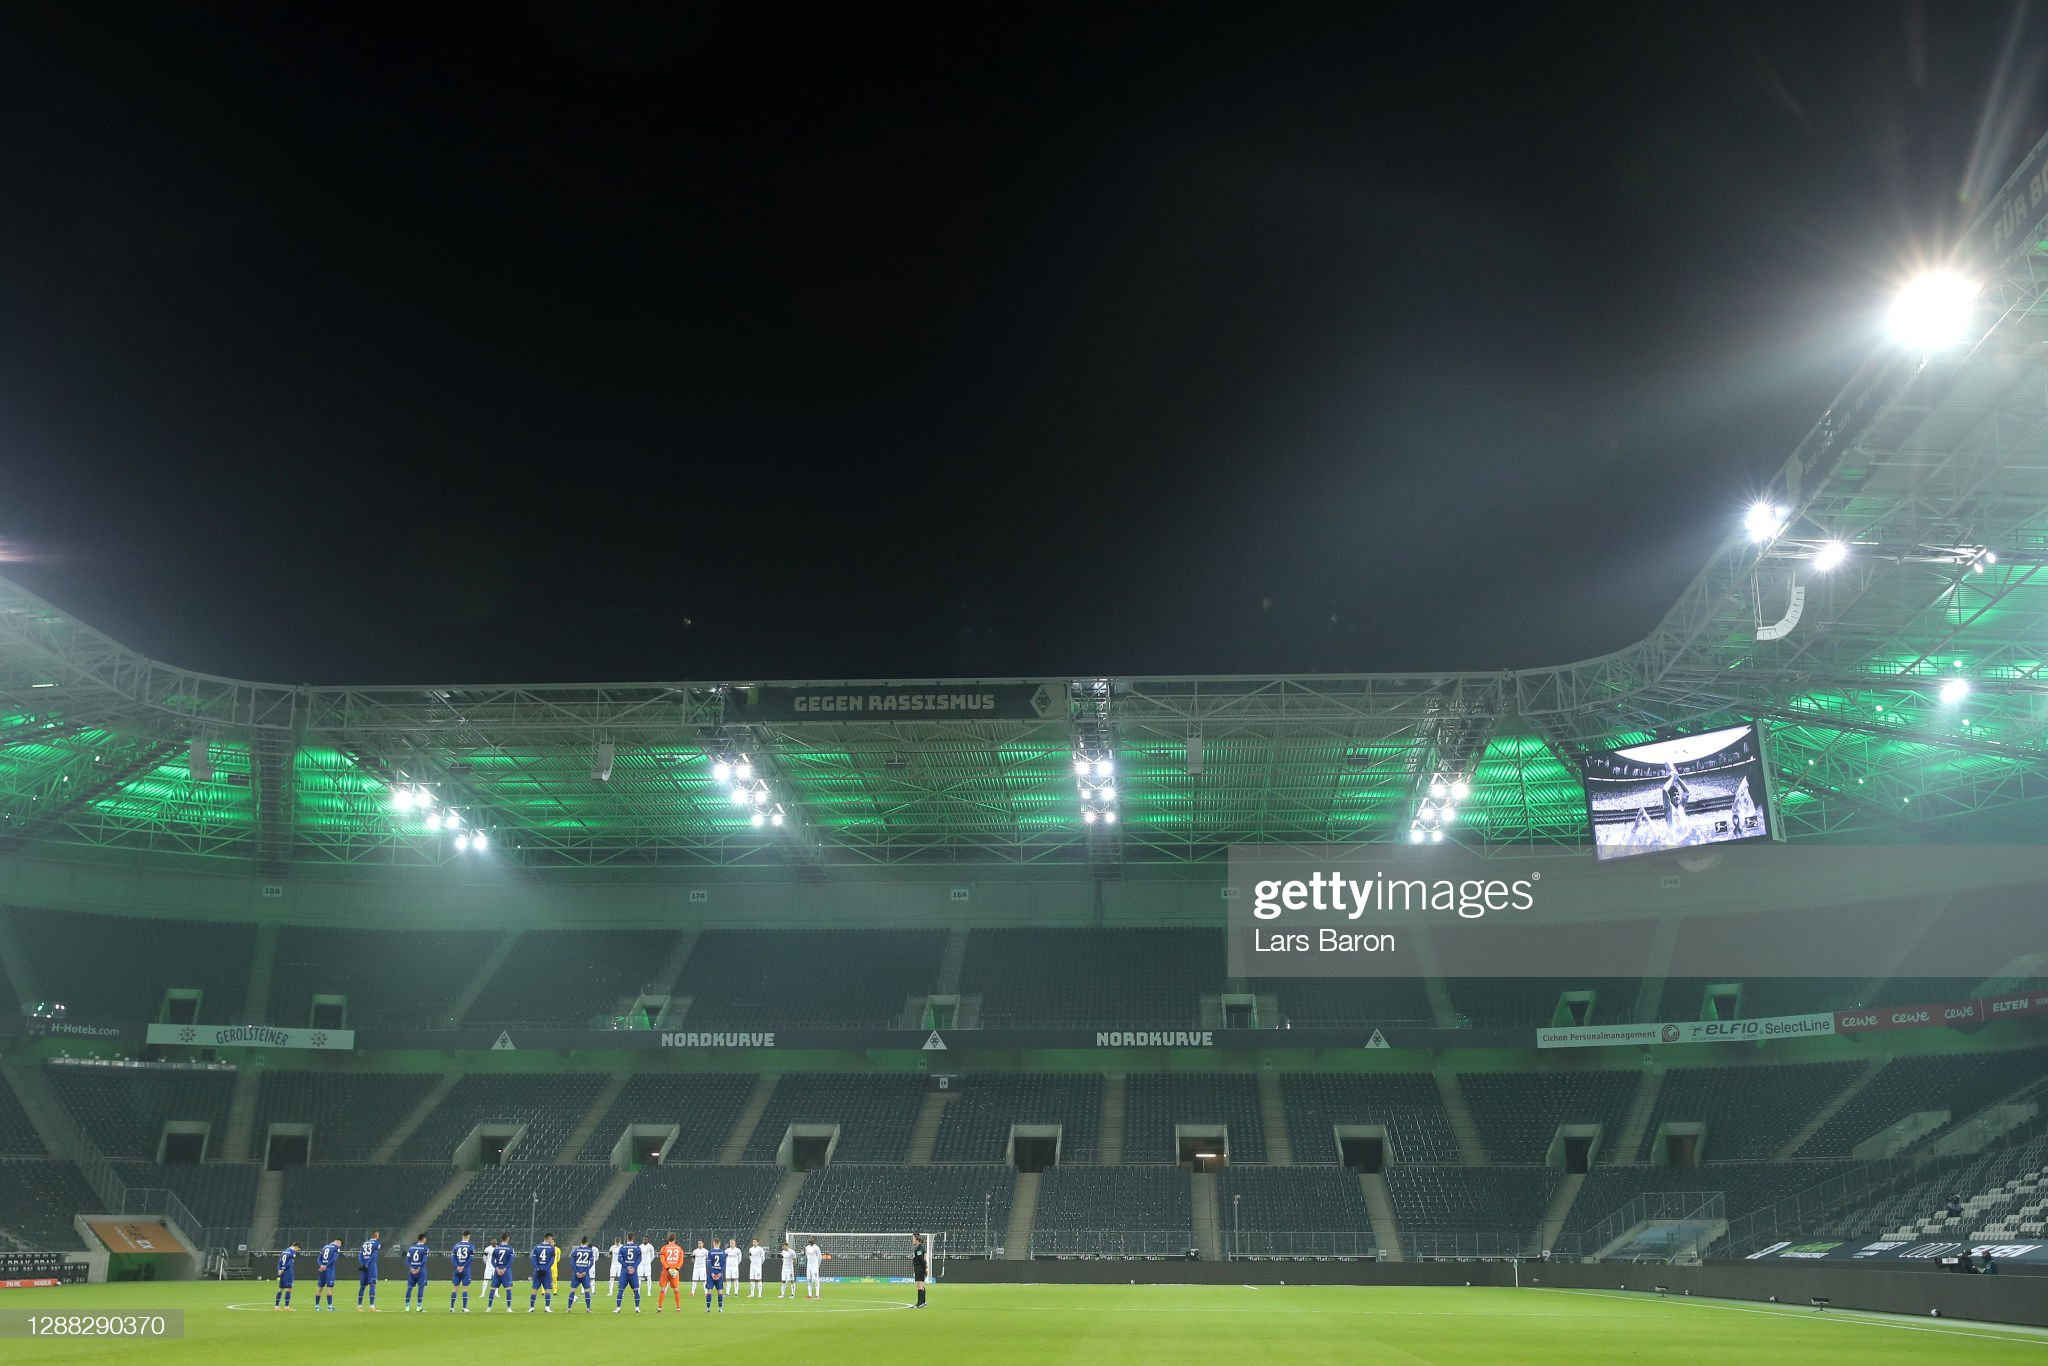 Monchengladbach vs Manchester City Preview, prediction and odds